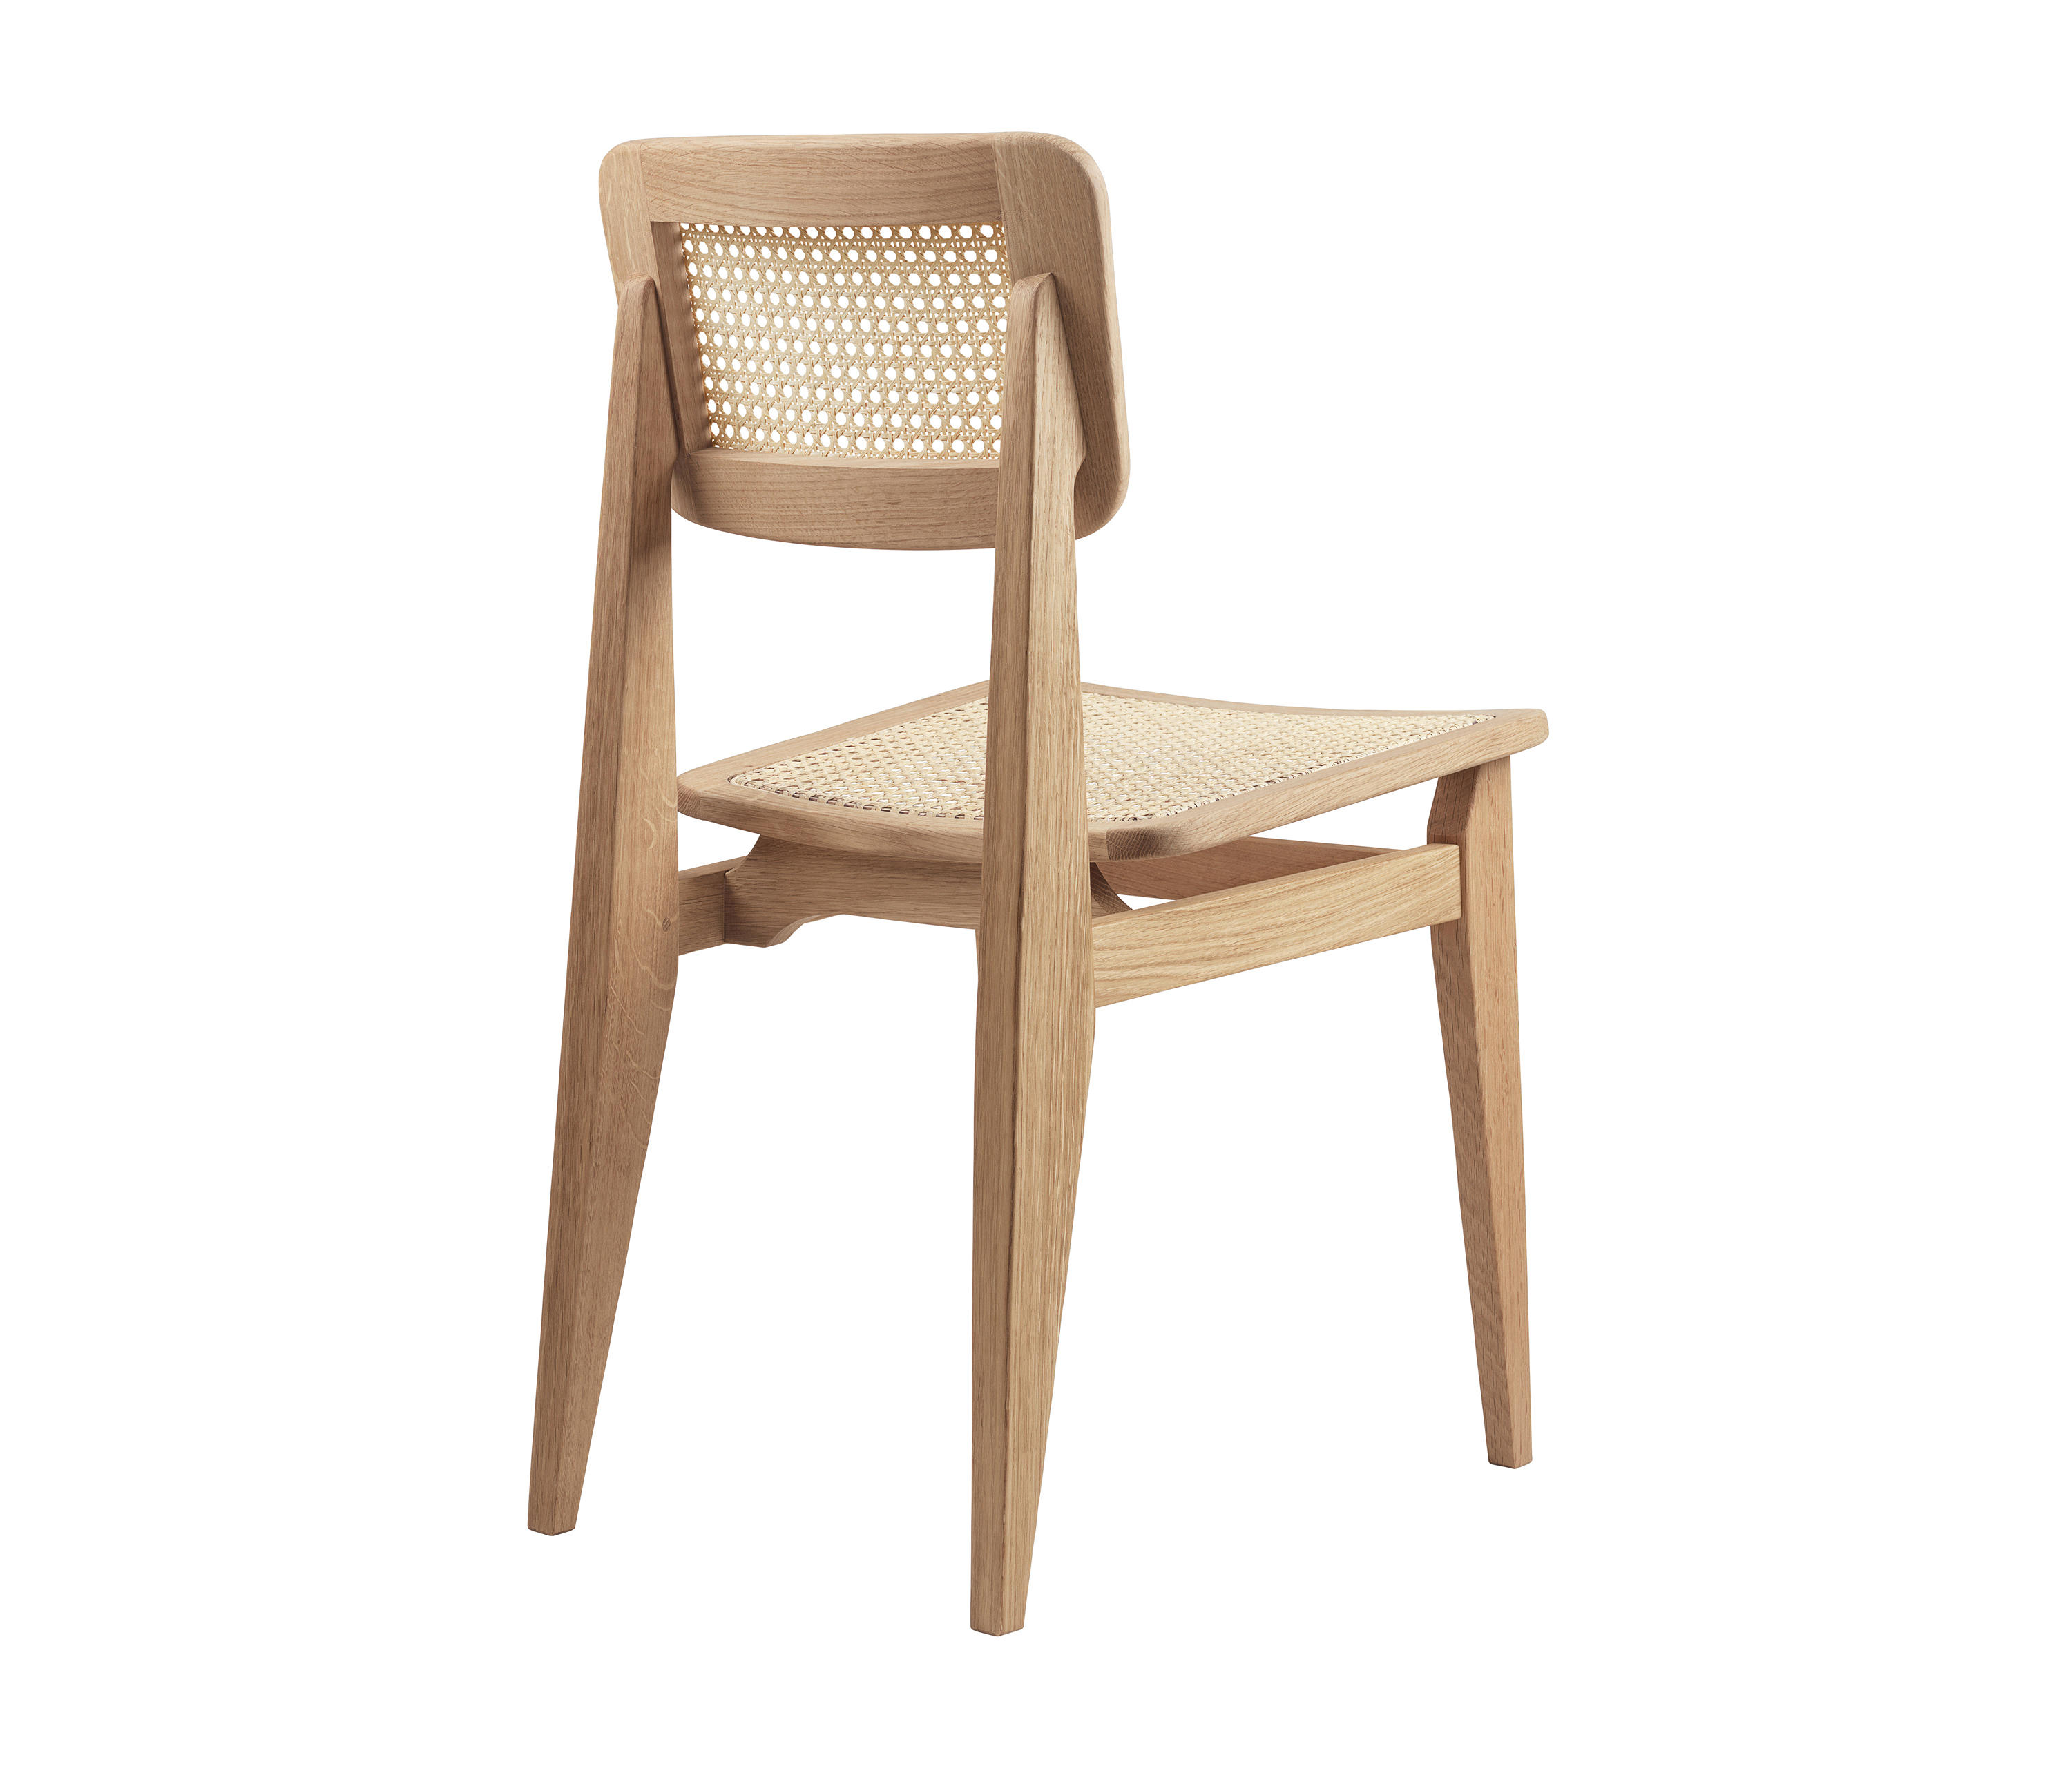 C Chair Dining Chair Chairs From Gubi Architonic